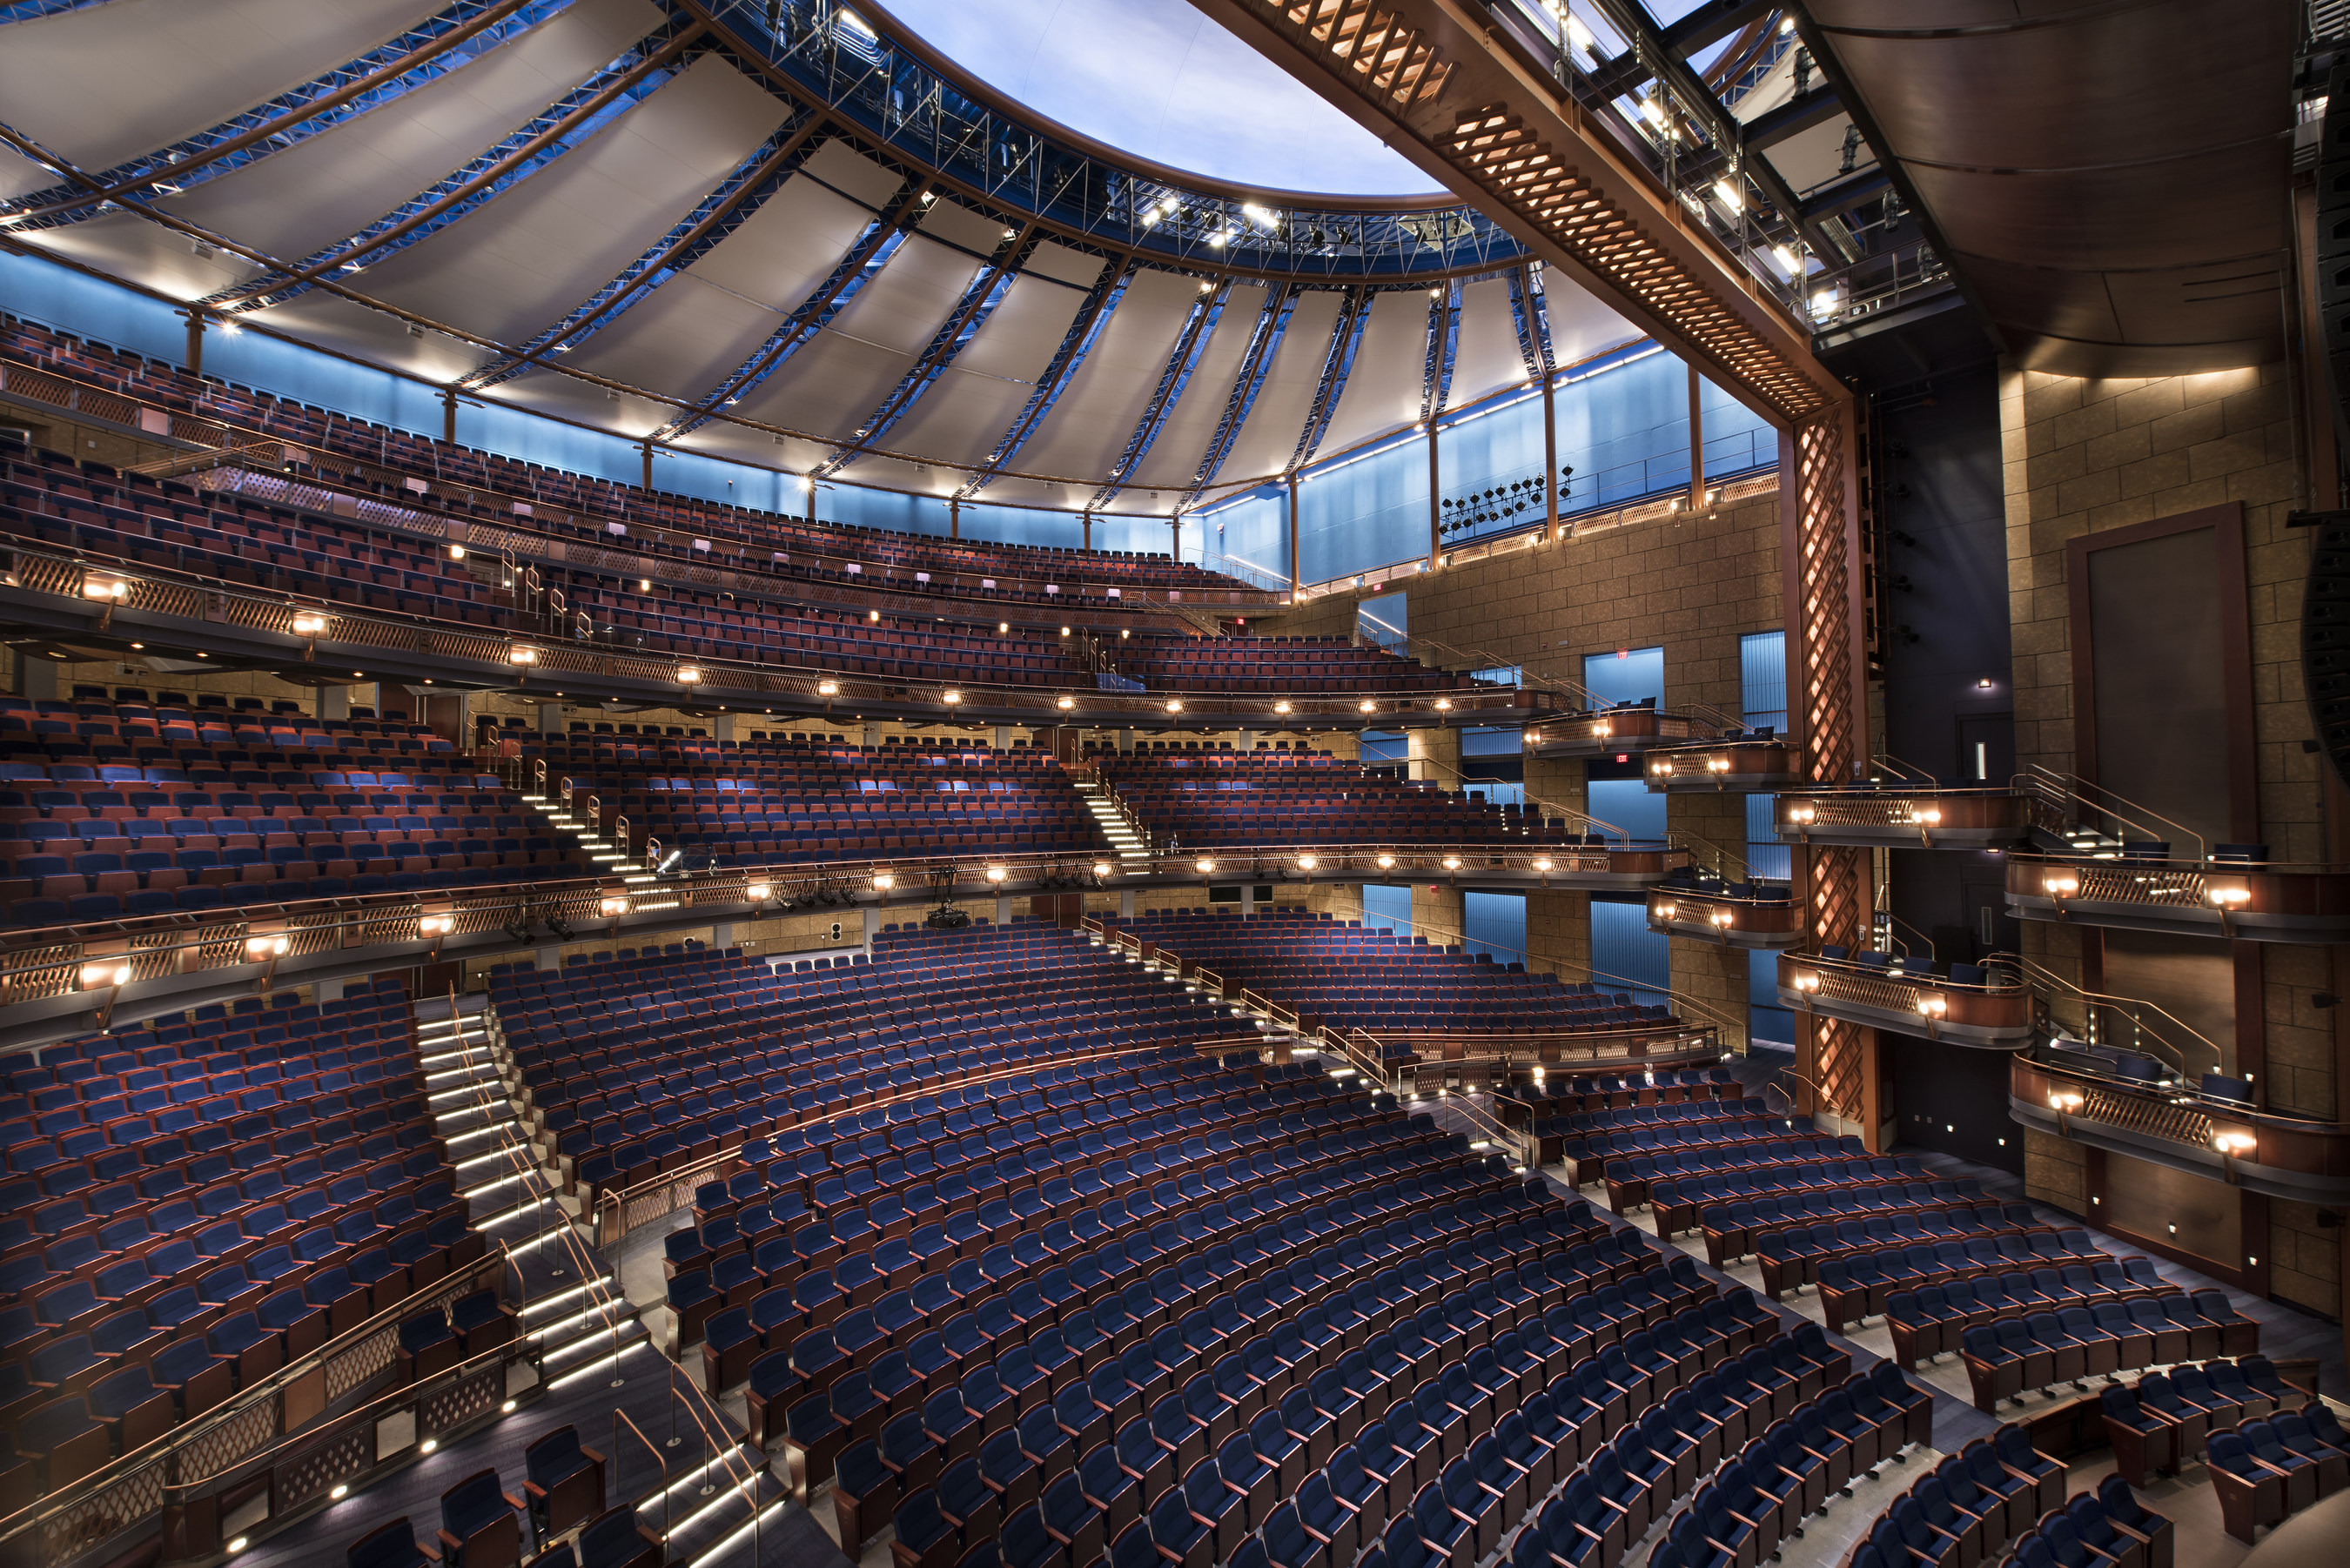 The walt disney theater copyright dr phillips center for performing arts courtesy also arup celebrates grand opening of orlando   rh prnewswire